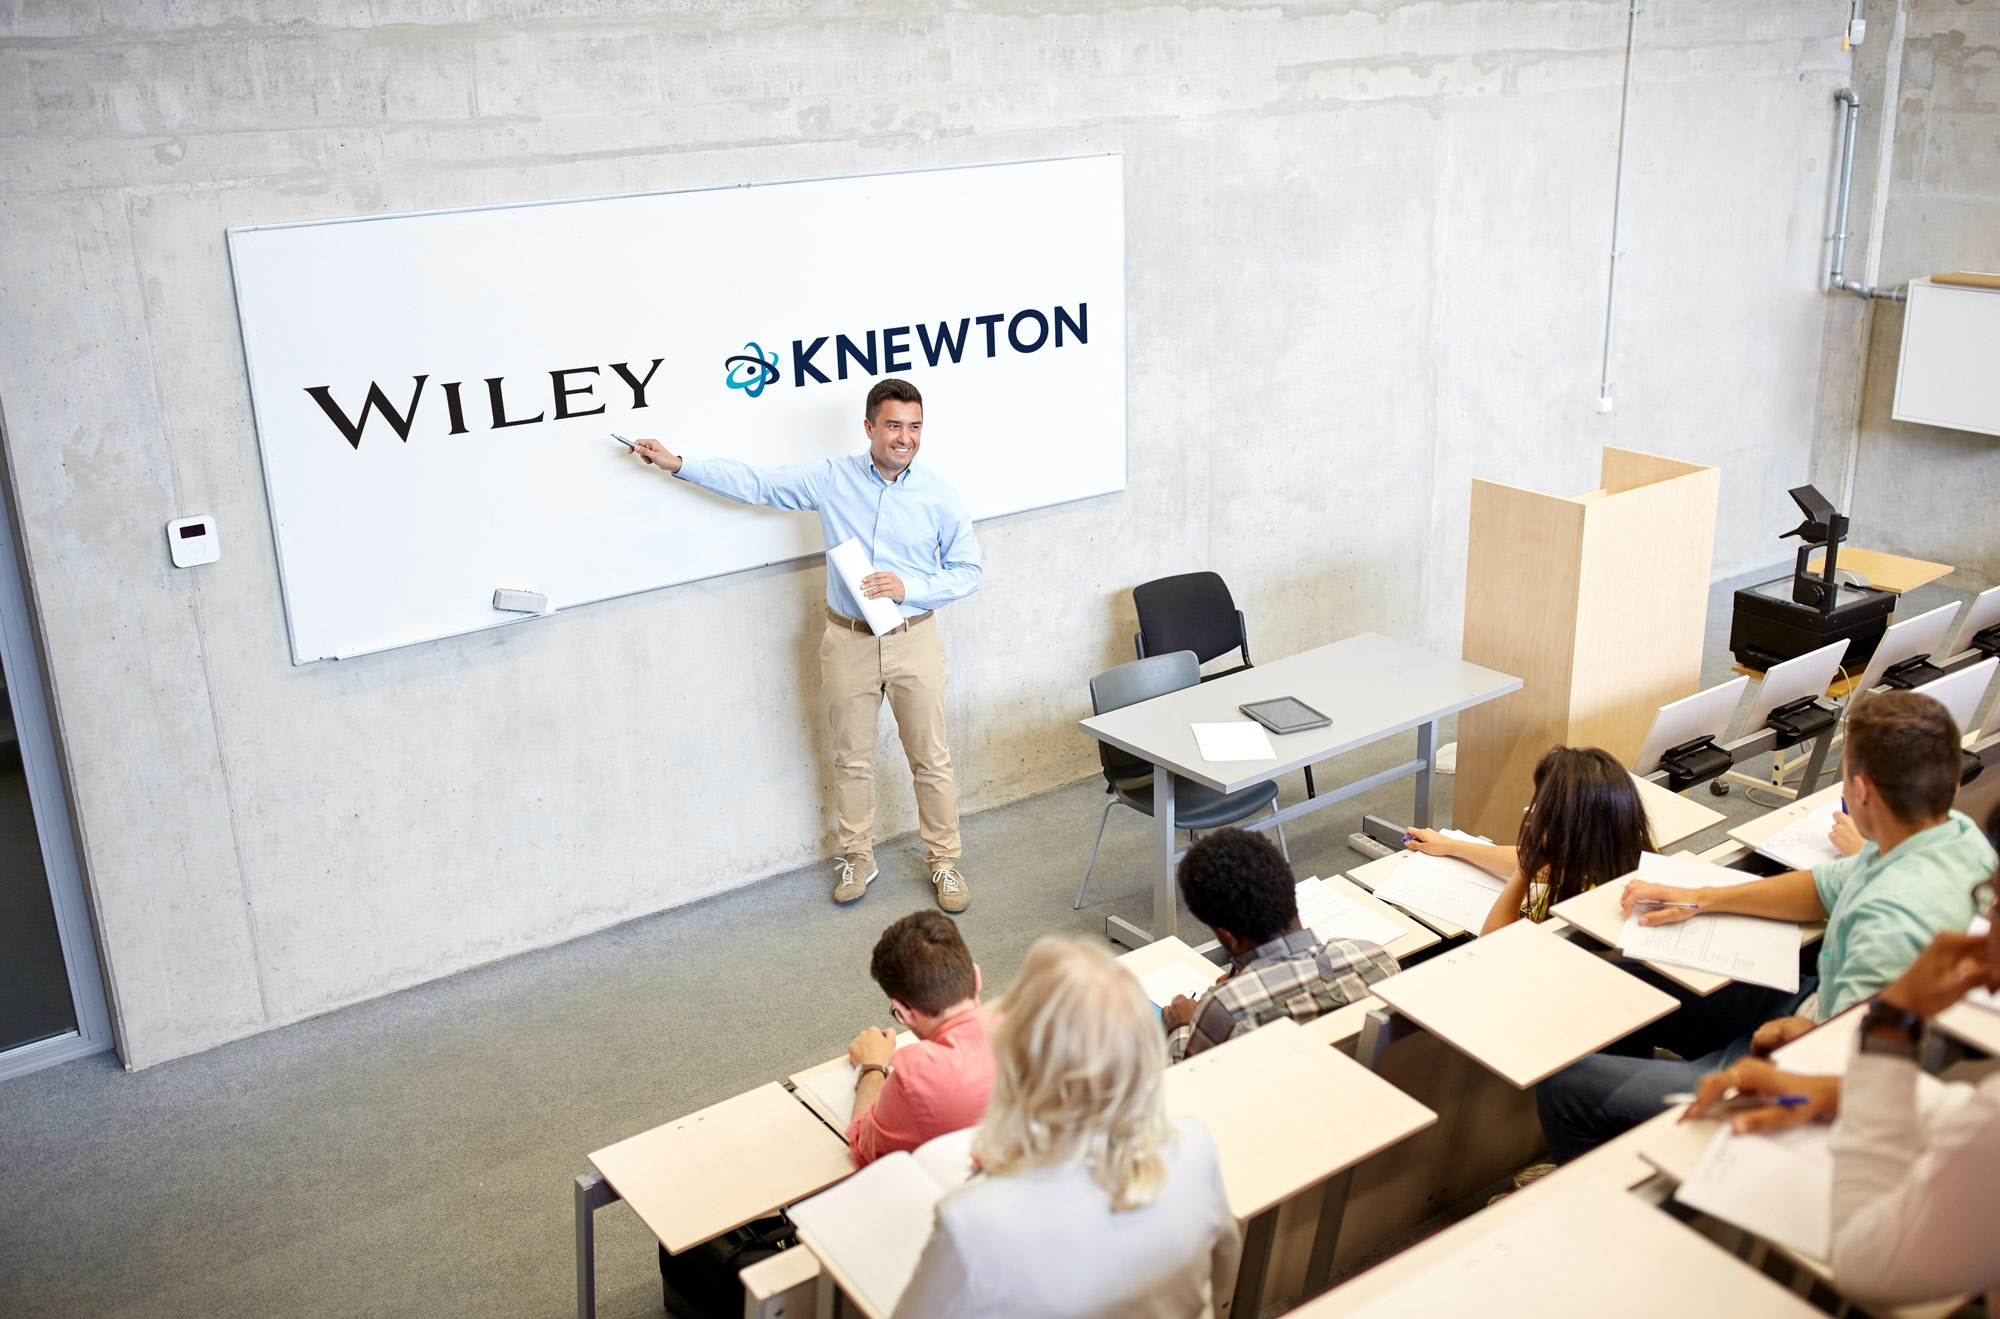 Knewton joins the Wiley family